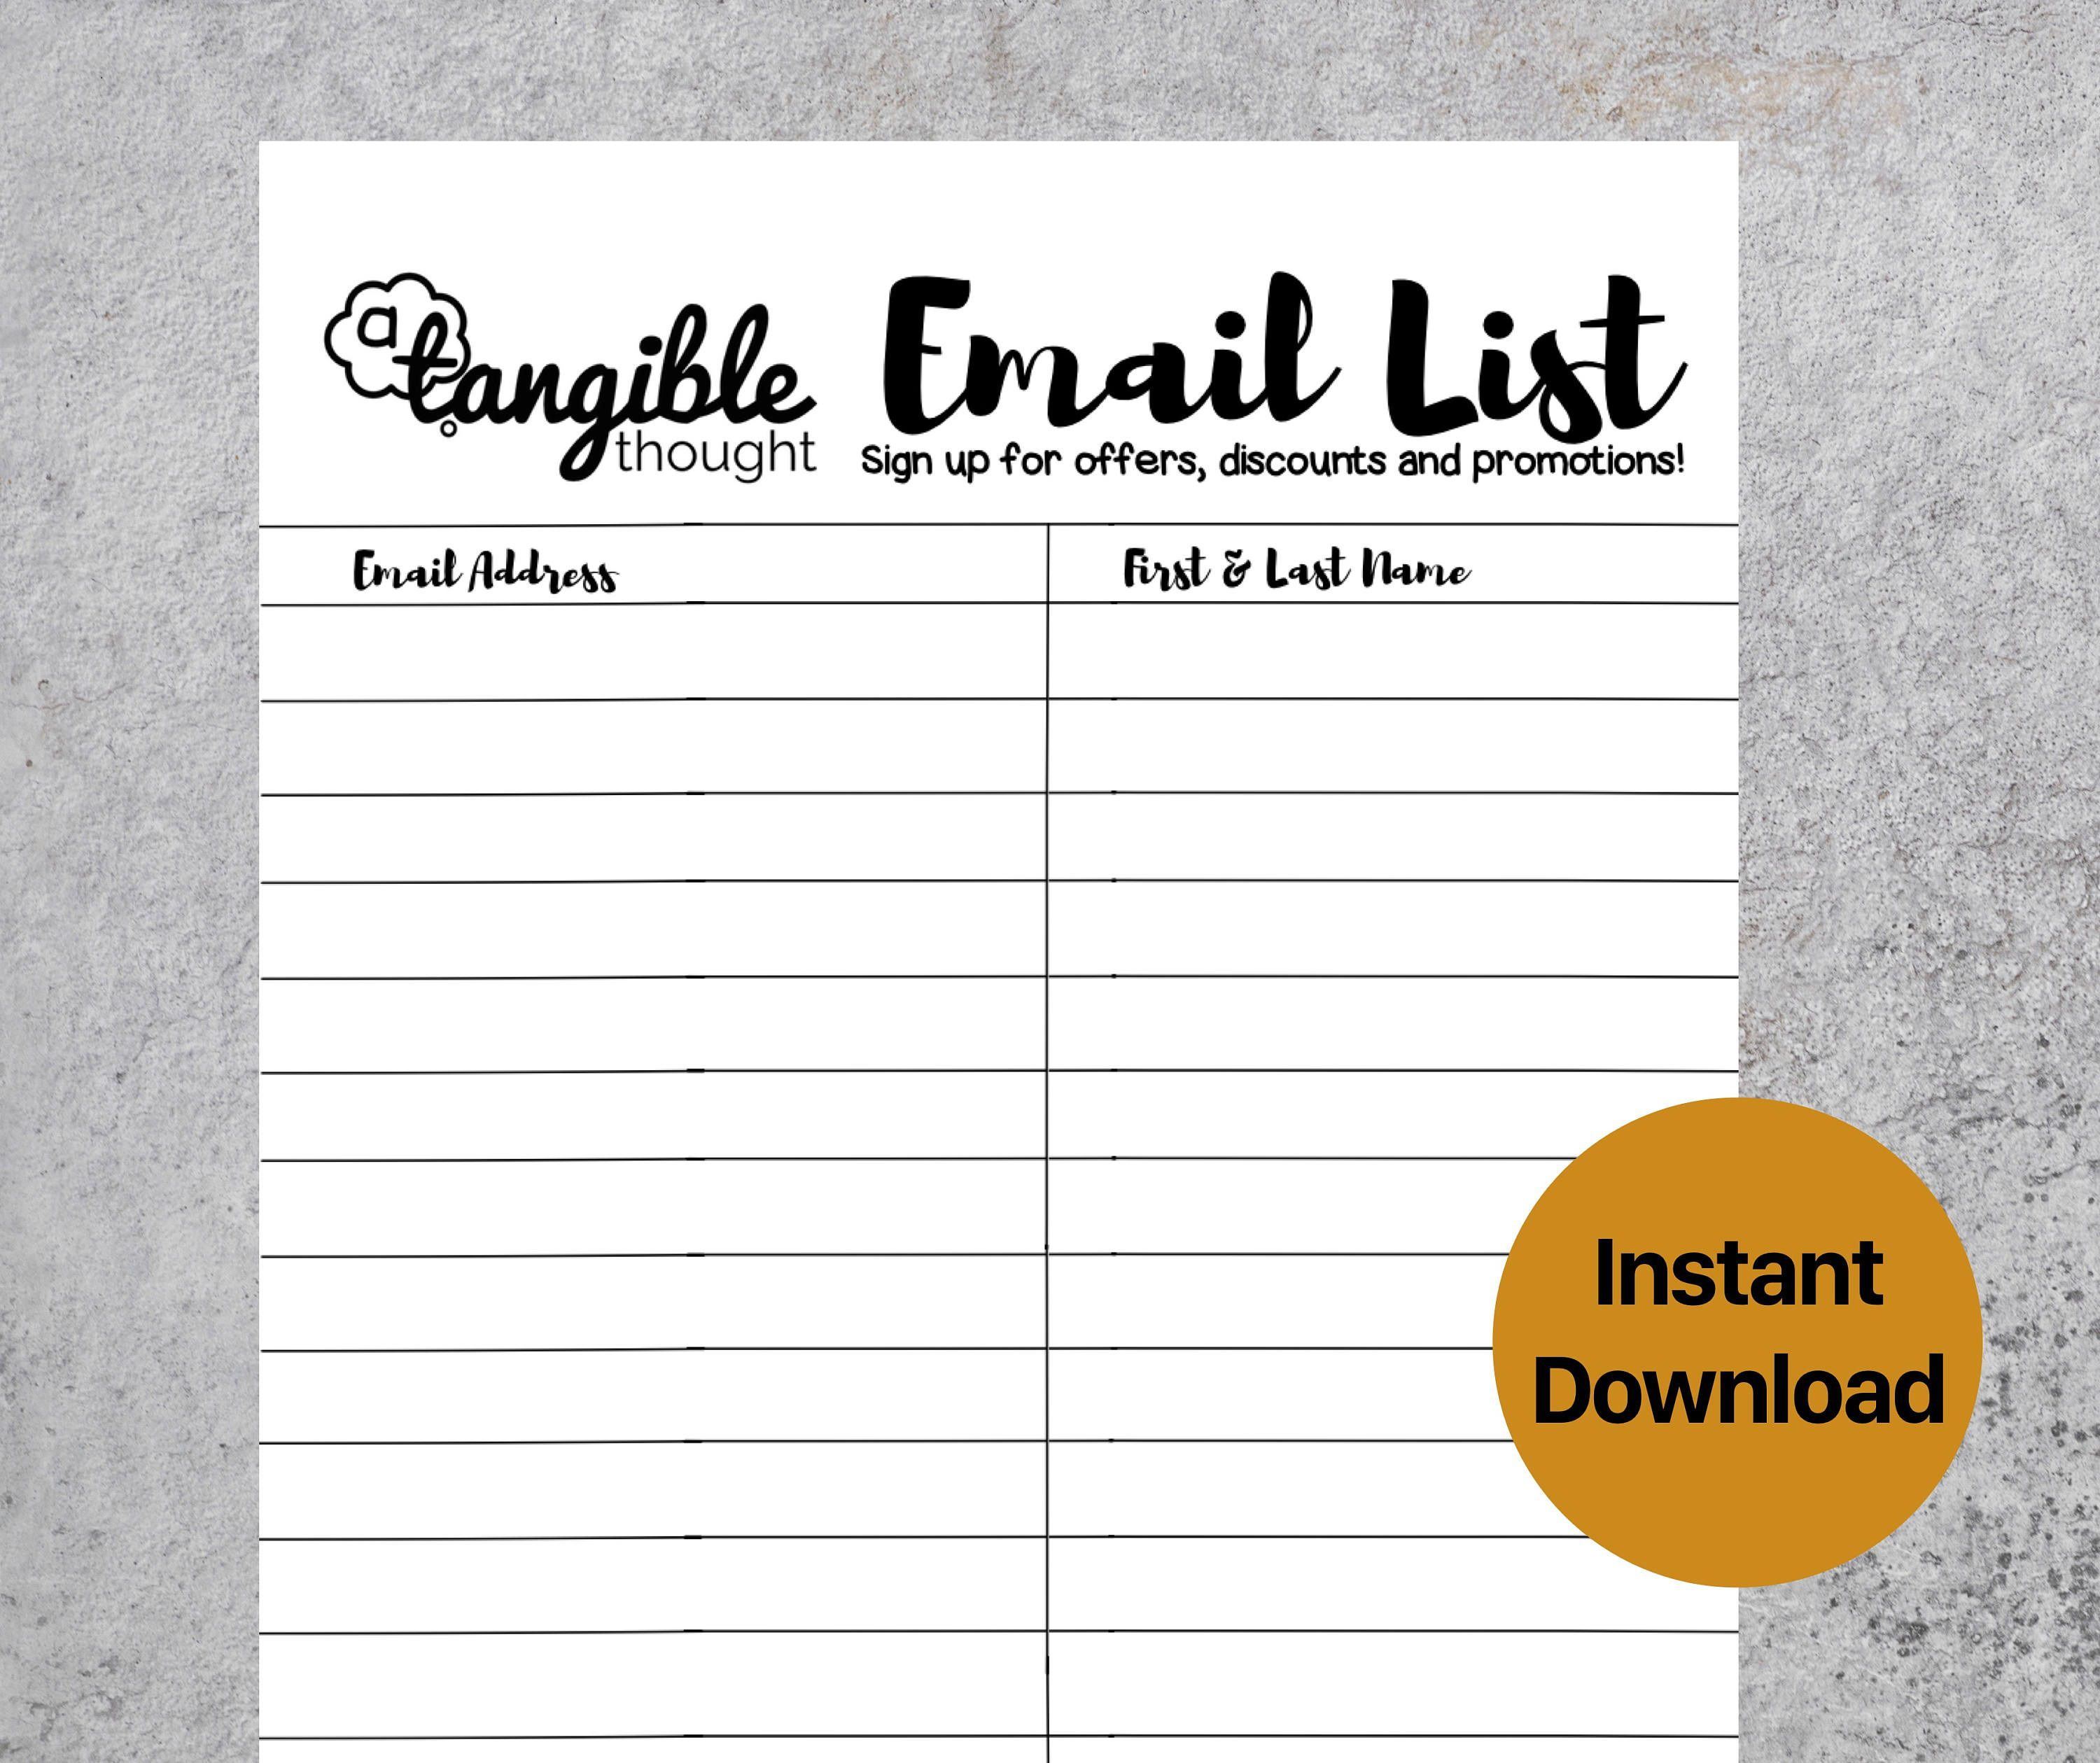 009 Fascinating Email Sign Up Template Sample  Sheet Google DocFull